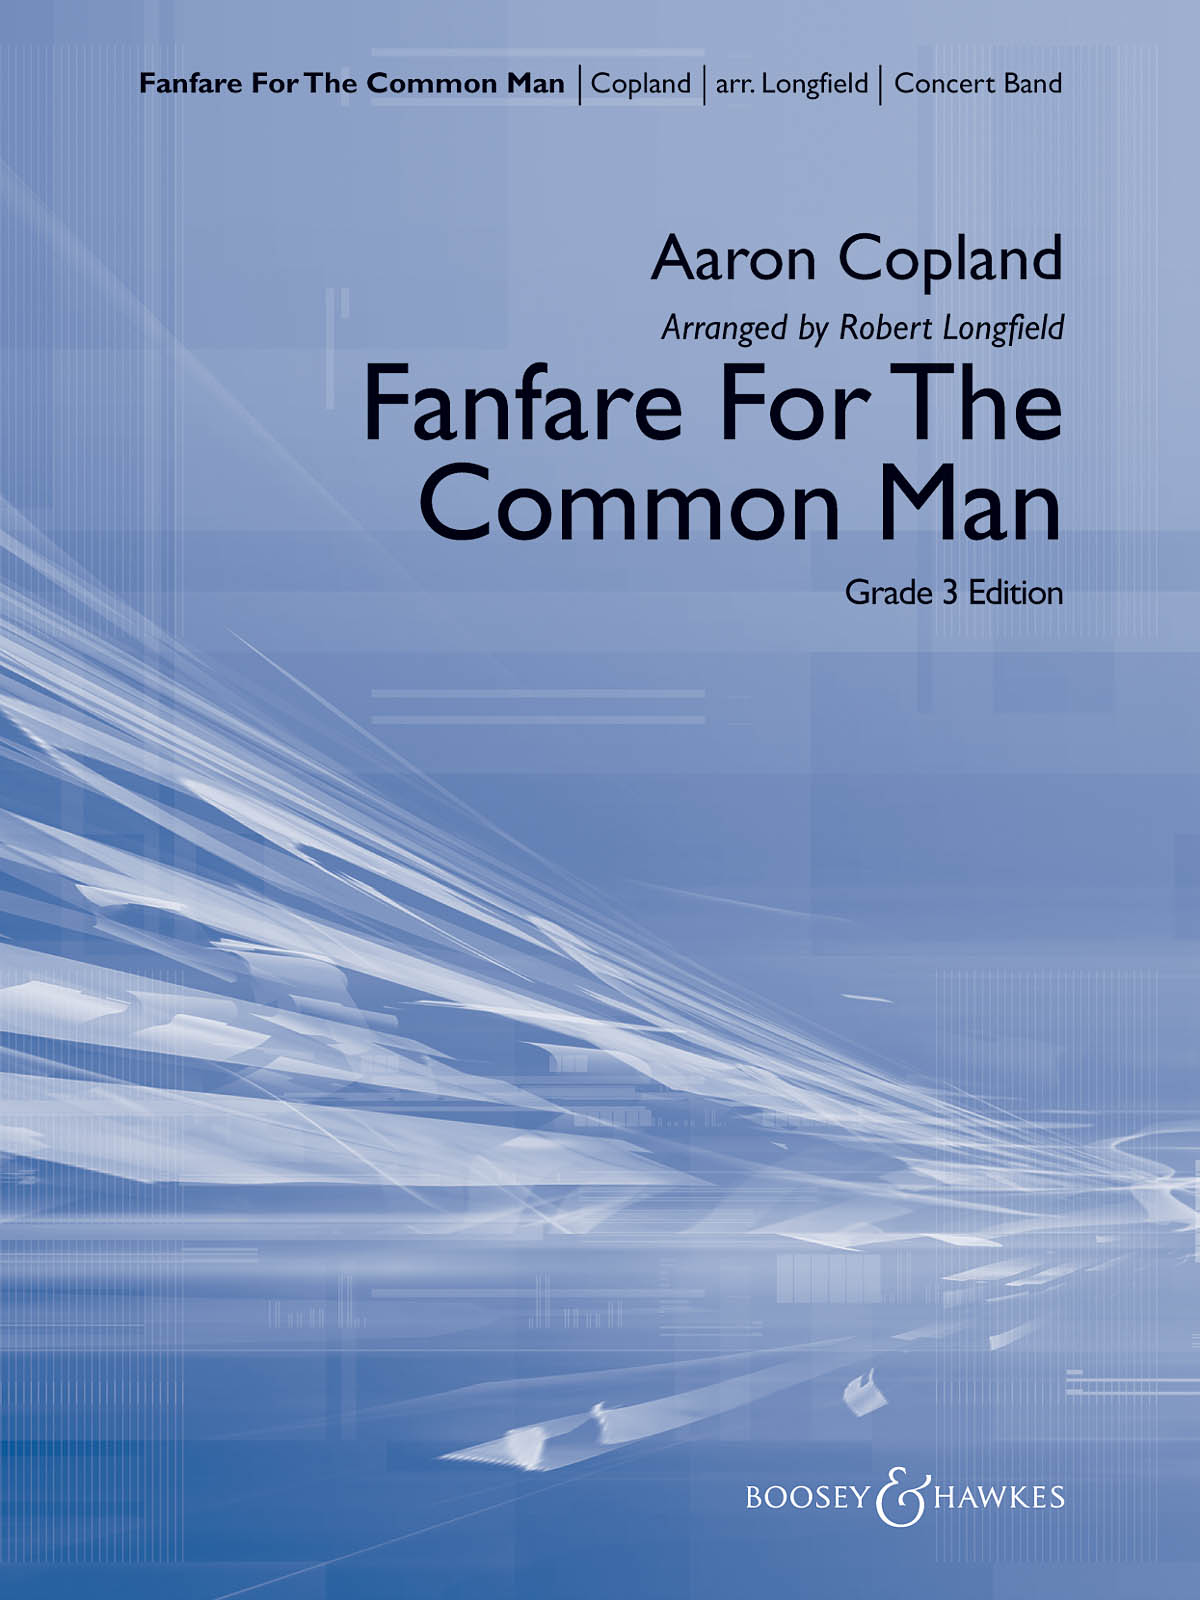 Aaron Copland: Fanfare For The Common Man (Arr. Robert Longfield): Concert Band: